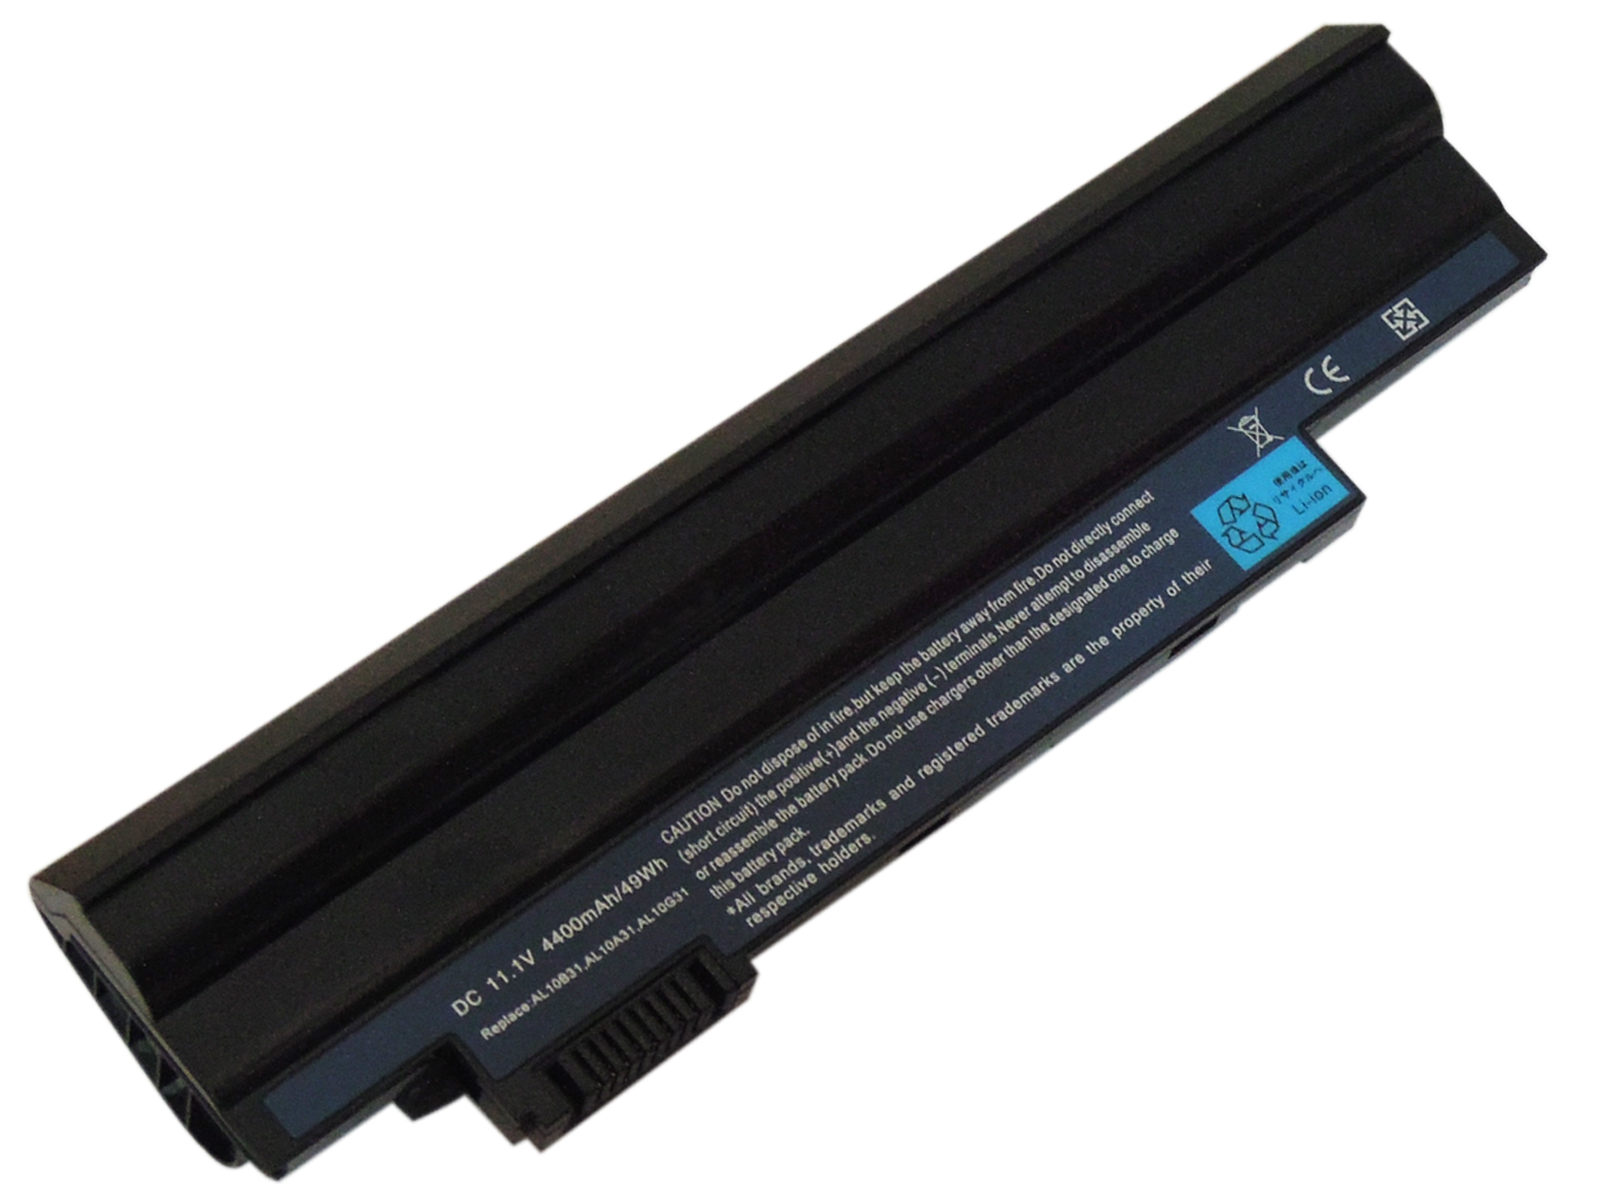 D260 Laptop battery